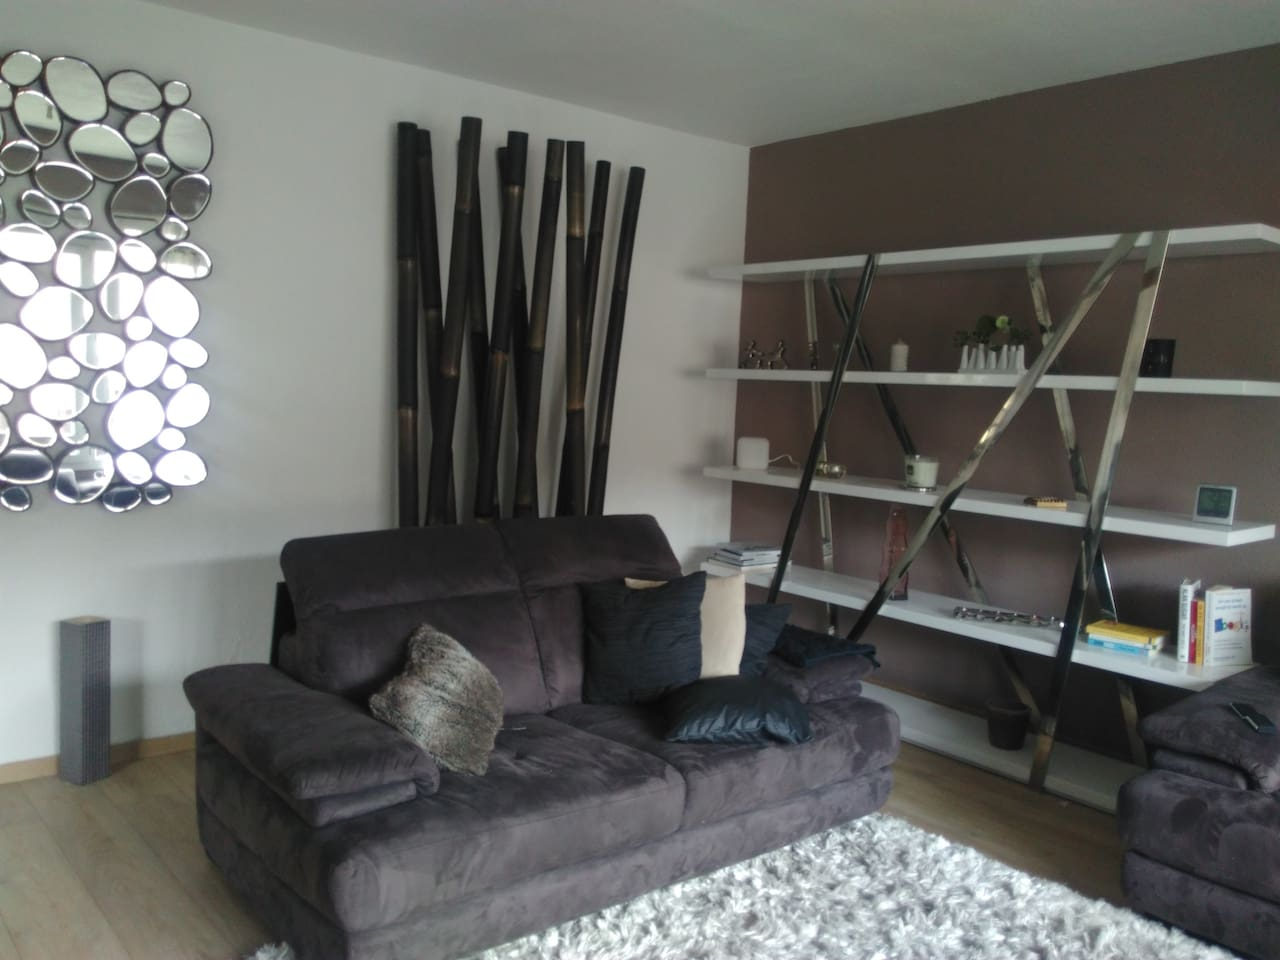 2 Rooms plus a big living room, 112m2 in total